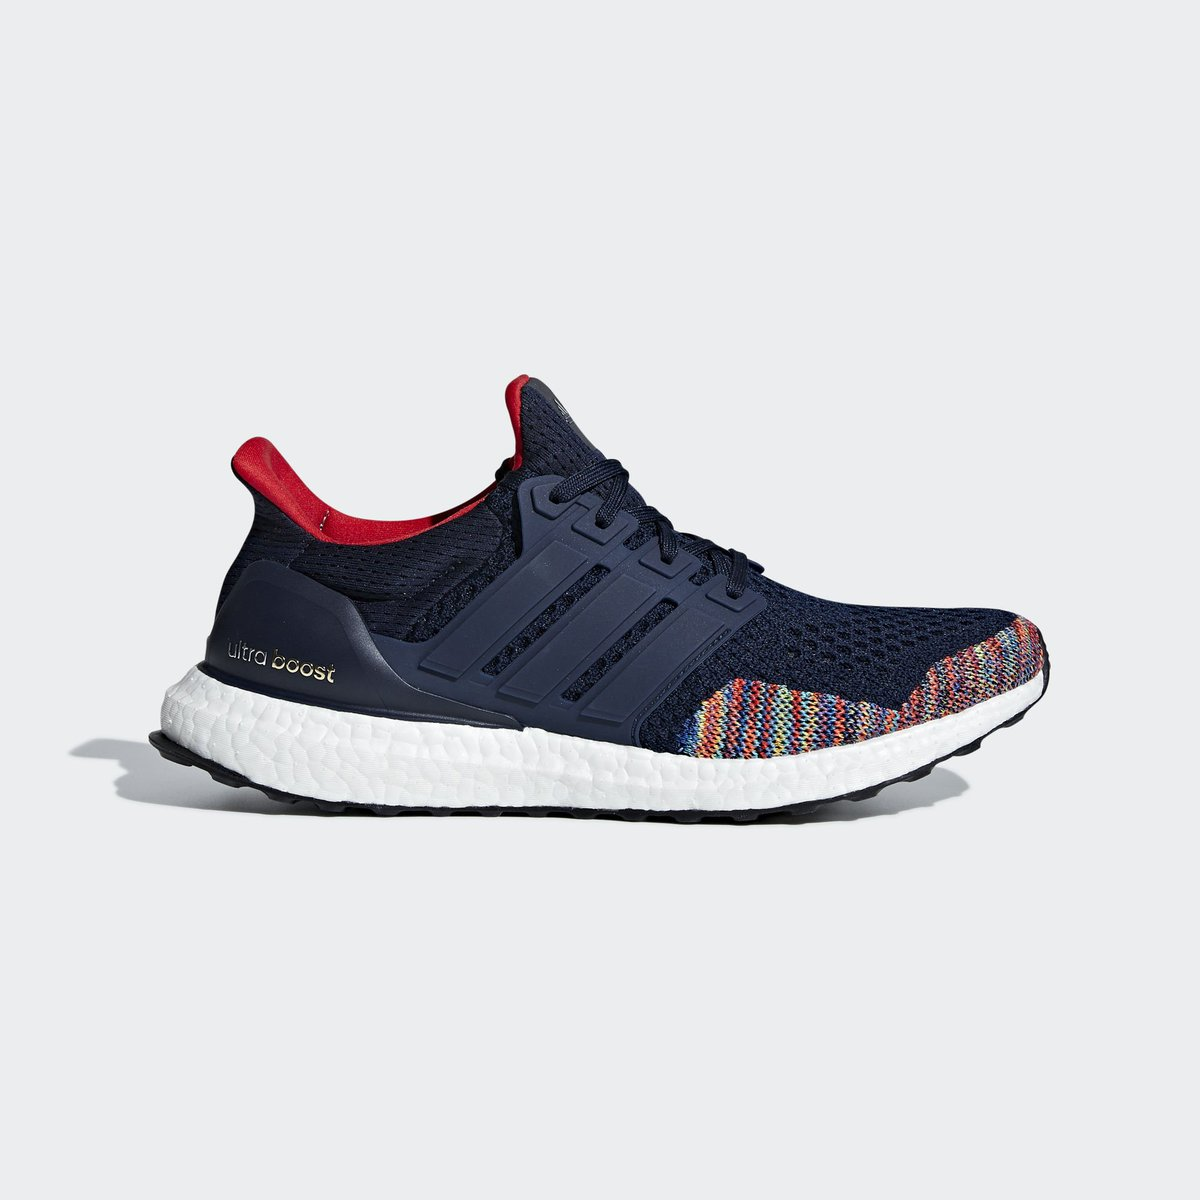 57793e51a Official adidas images of the returning Navy Multicolor Ultra Boost 1.0